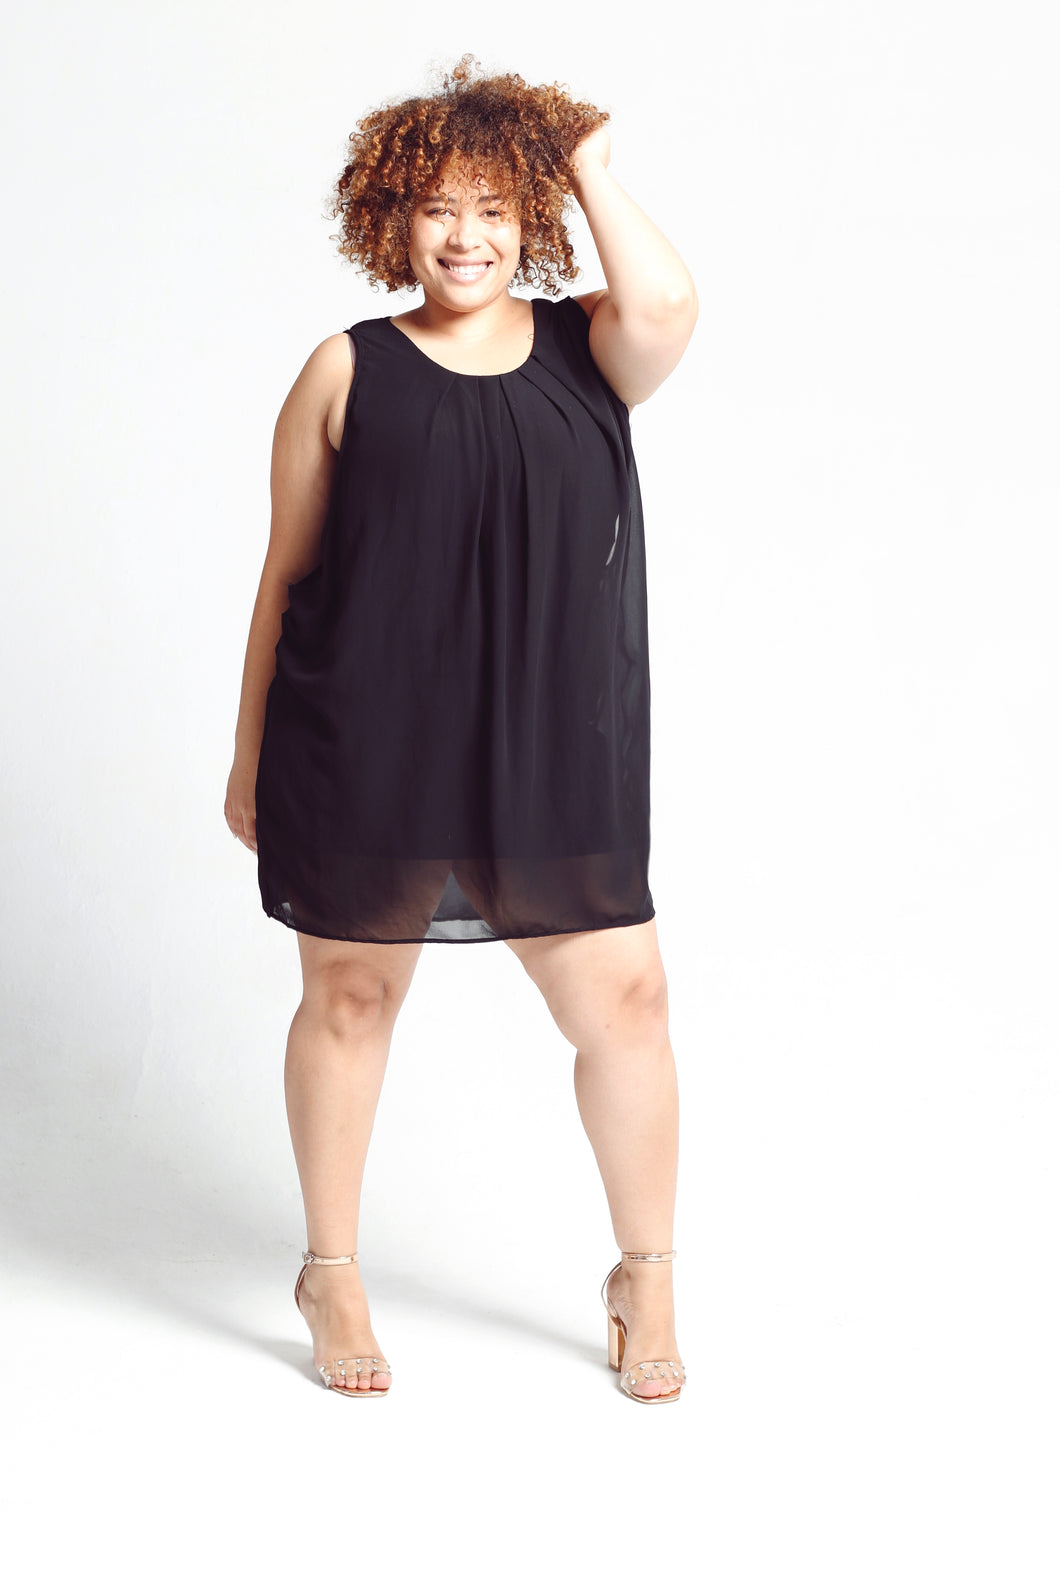 Black sleeveless dress - Size Large